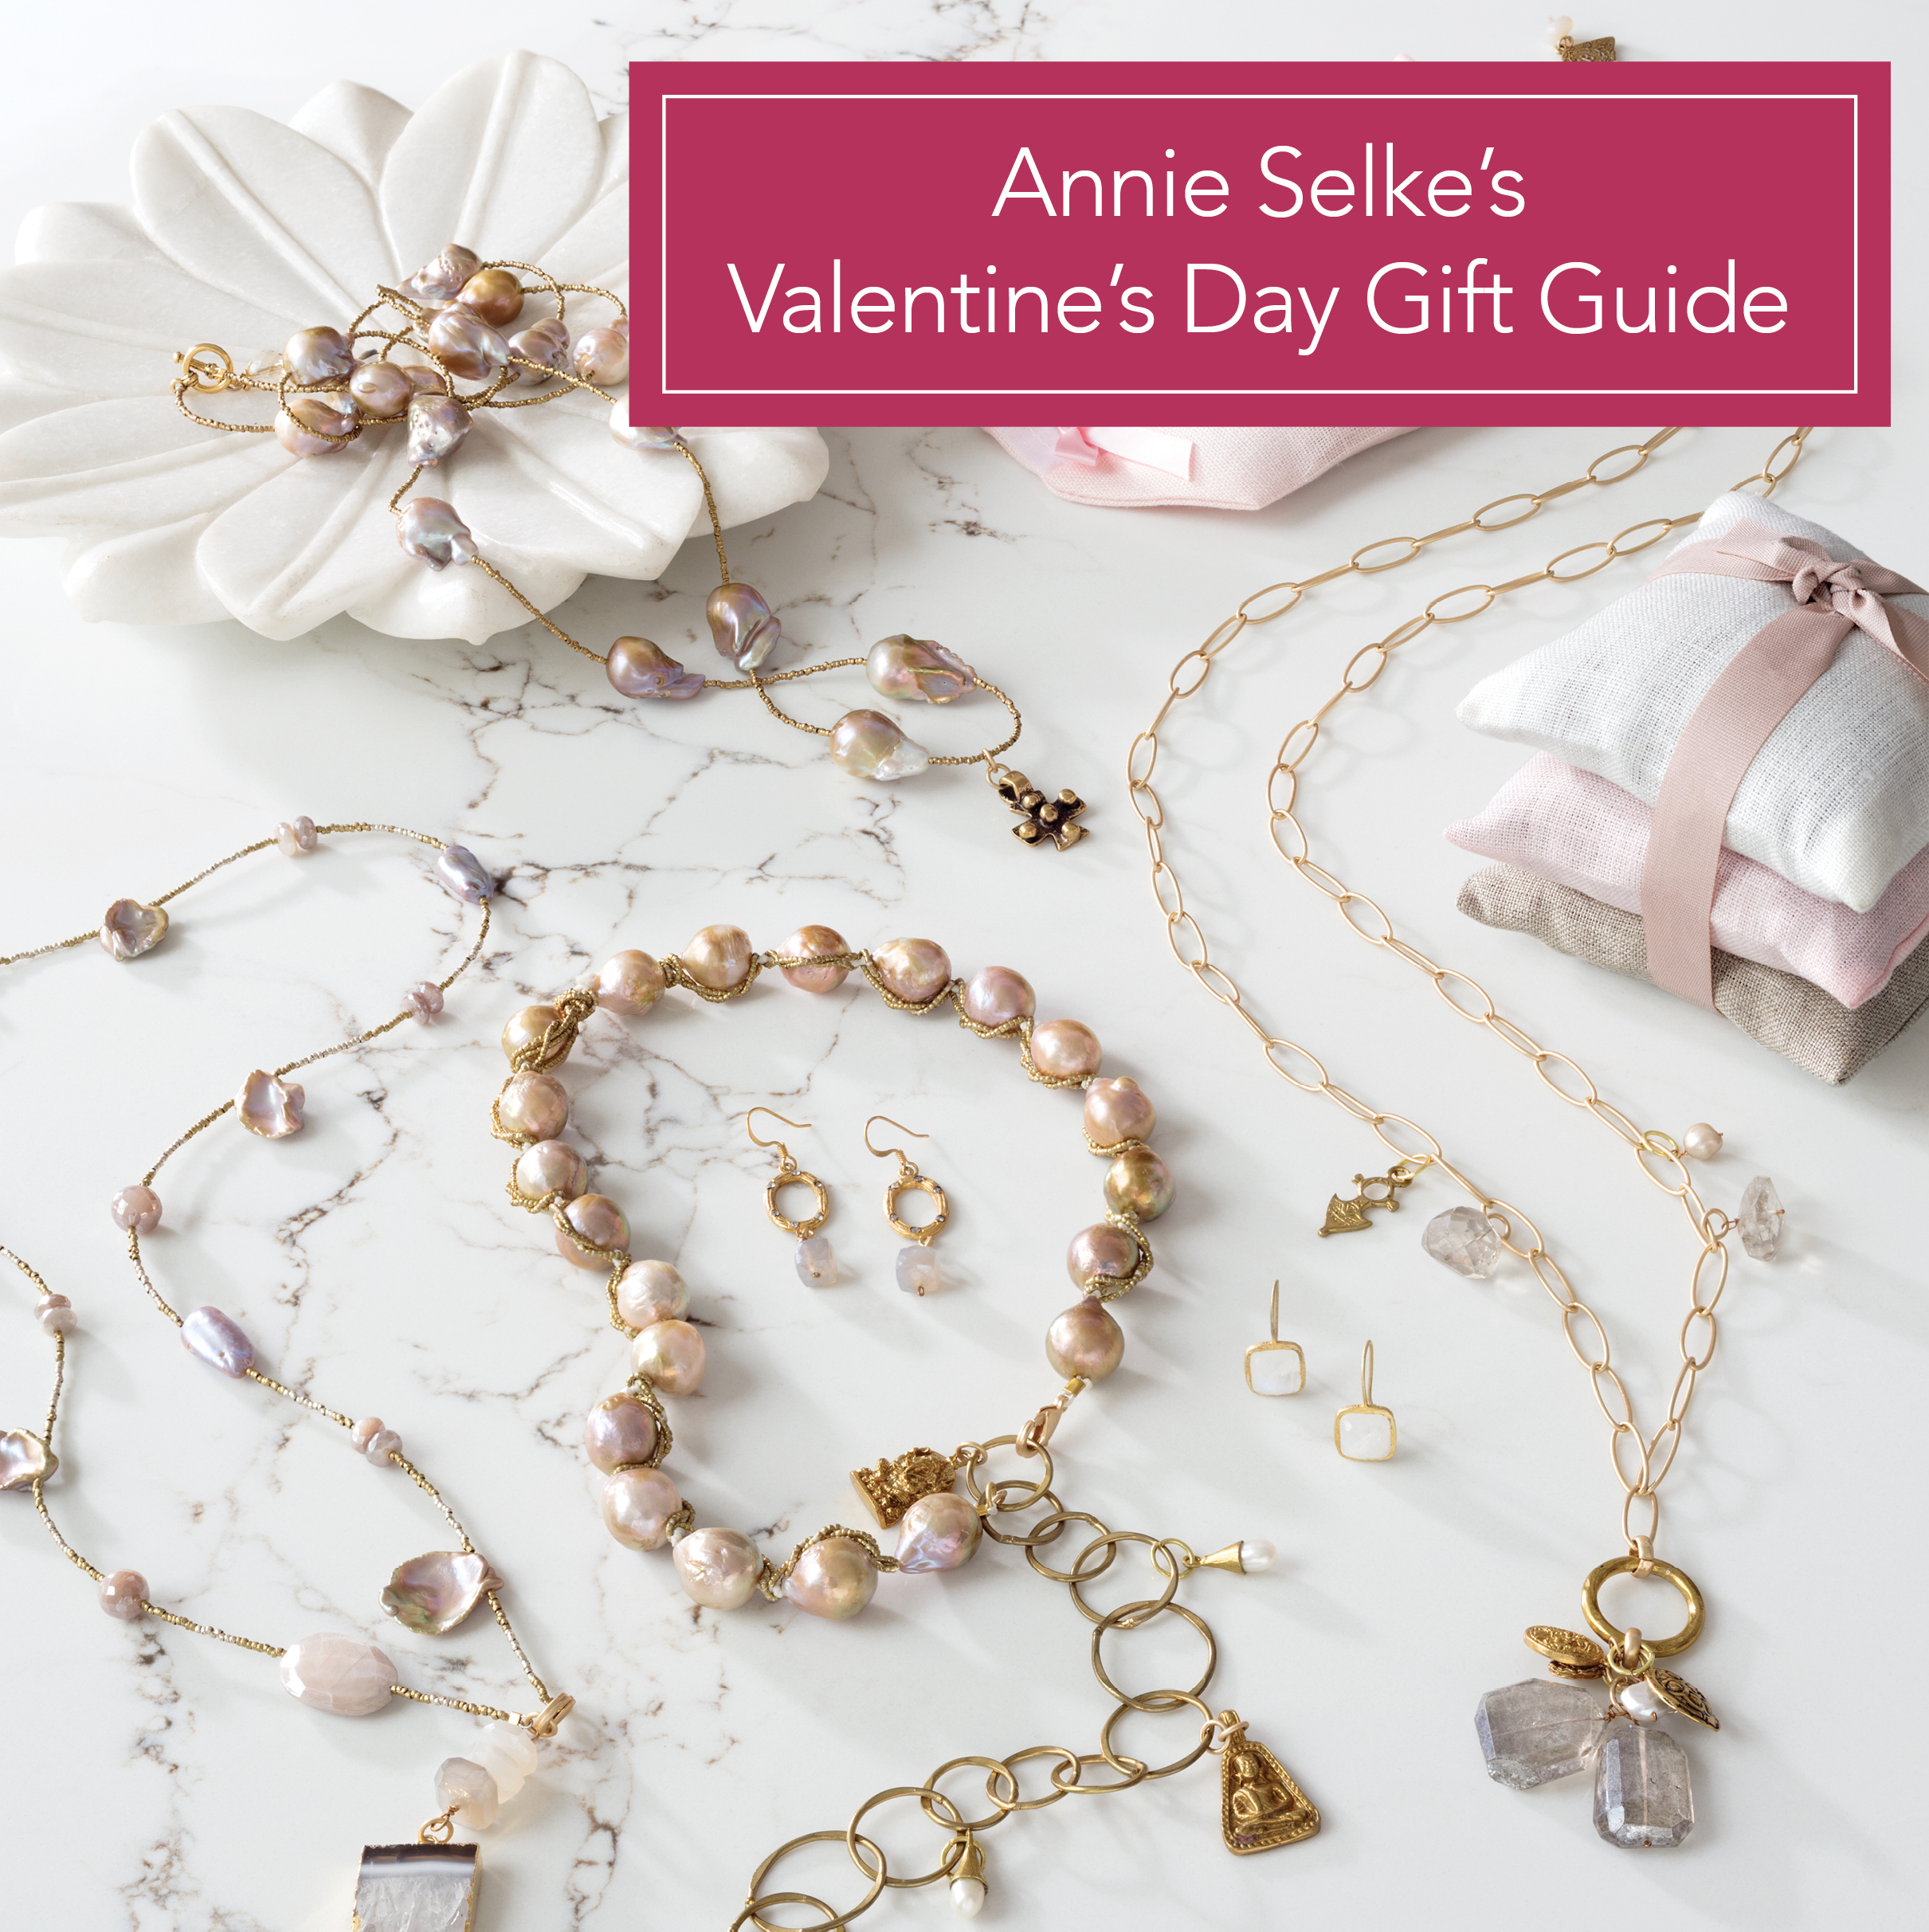 Gifts We Heart: Our Valentine's Day Gift Guide | Annie Selke's Fresh American Style